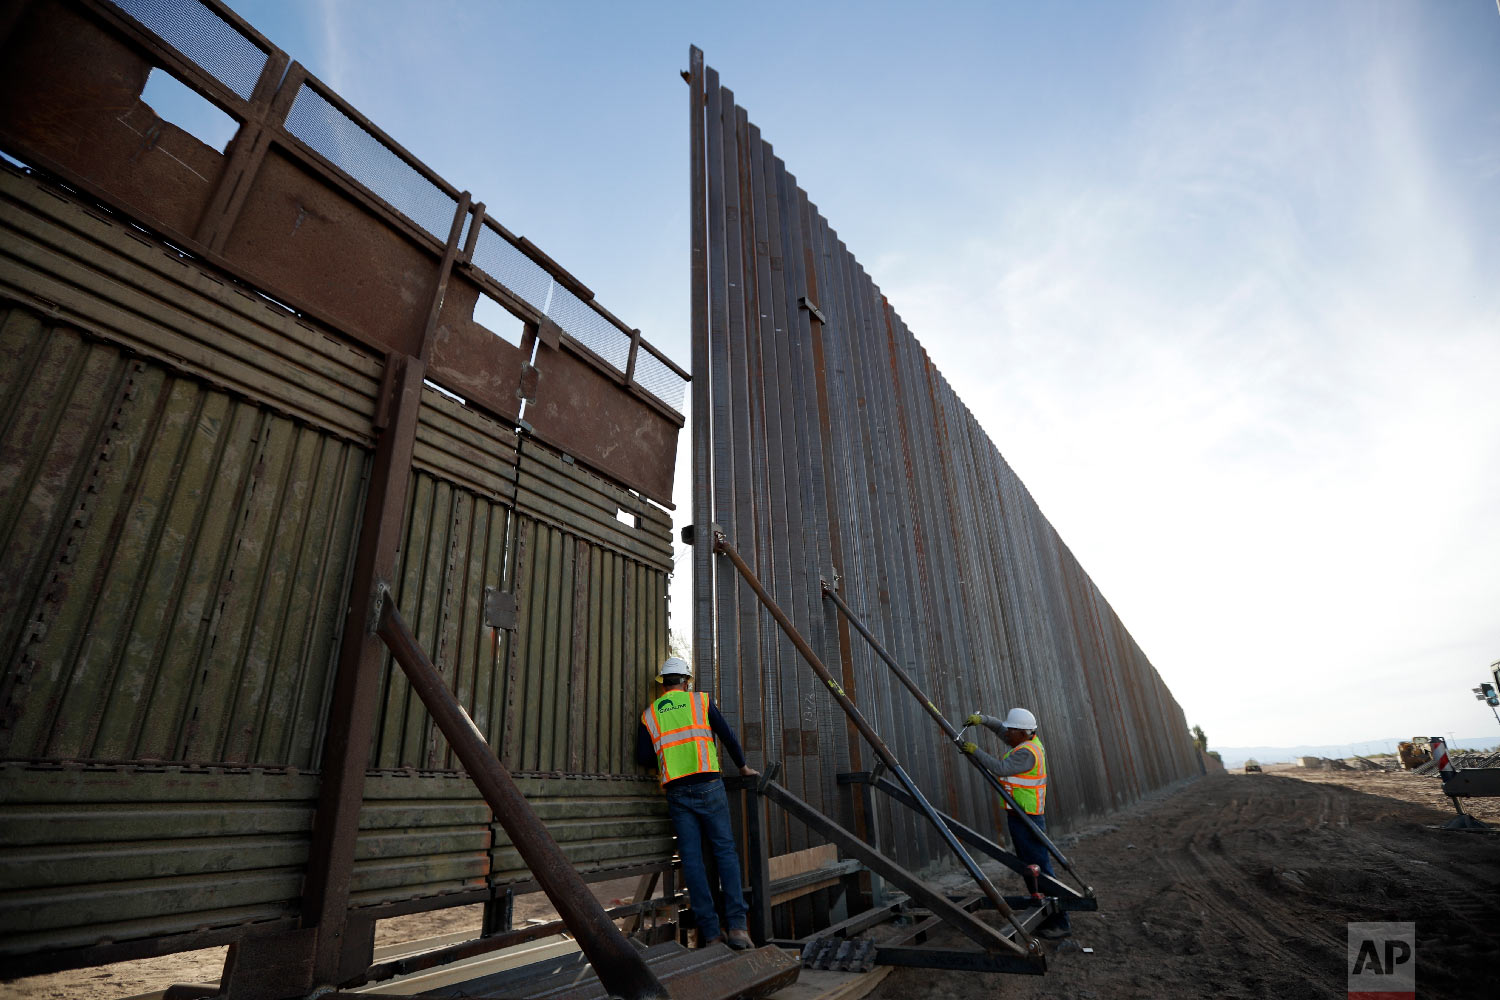 The first section of a new structure along the border separating Mexicali, Mexico and Calexico, Calif., March 5, 2018.